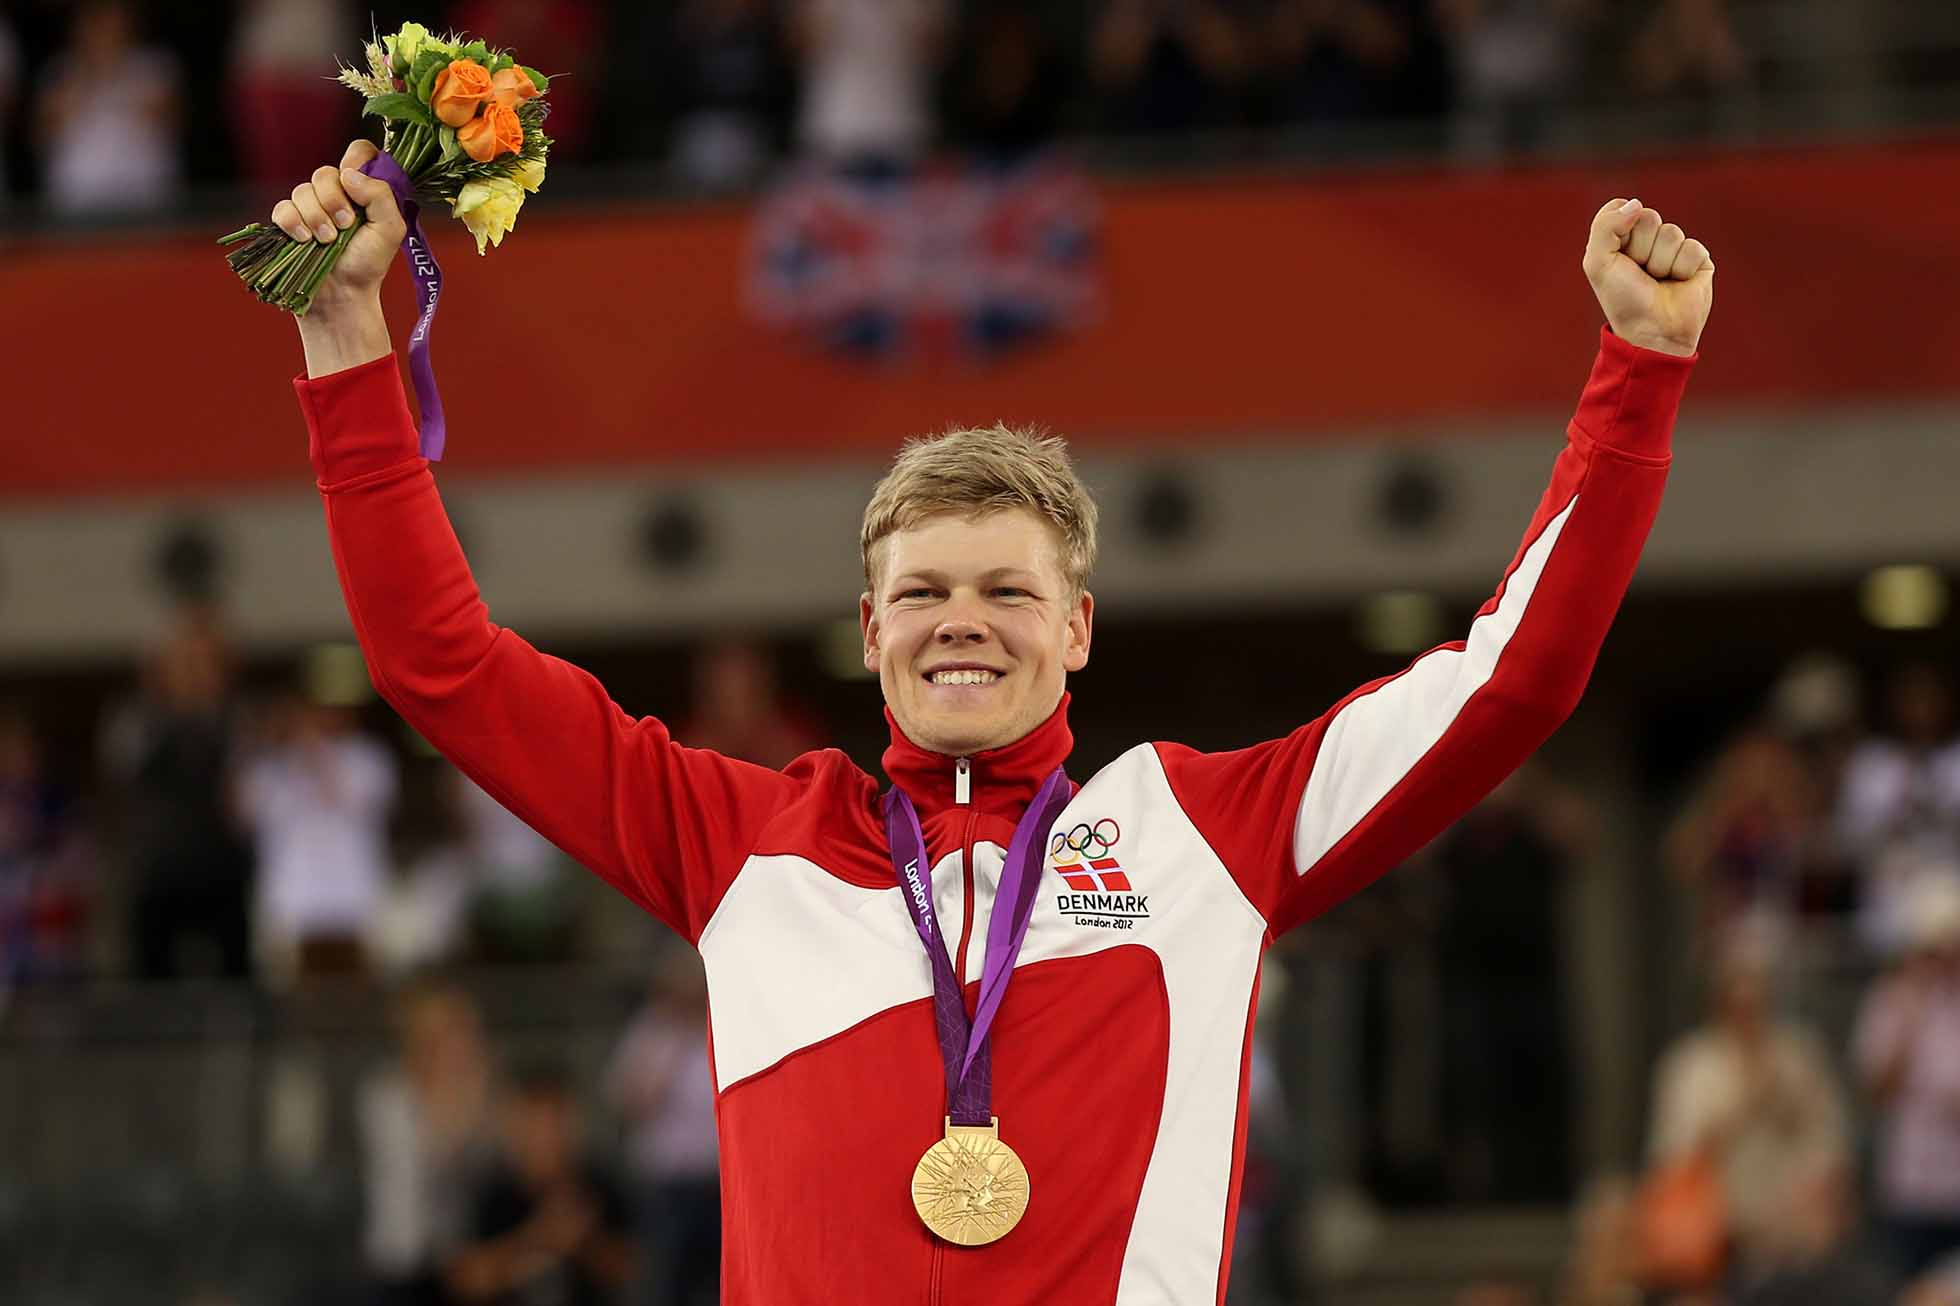 LONDON, ENGLAND - AUGUST 05: Lasse Norman Hansen of Denmark is presented the Gold medal during the medal ceremony for the Men's Omnium Track Cycling on Day 9 of the London 2012 Olympic Games at Velodrome on August 5, 2012 in London, England. (Photo by Bryn Lennon/Getty Images)